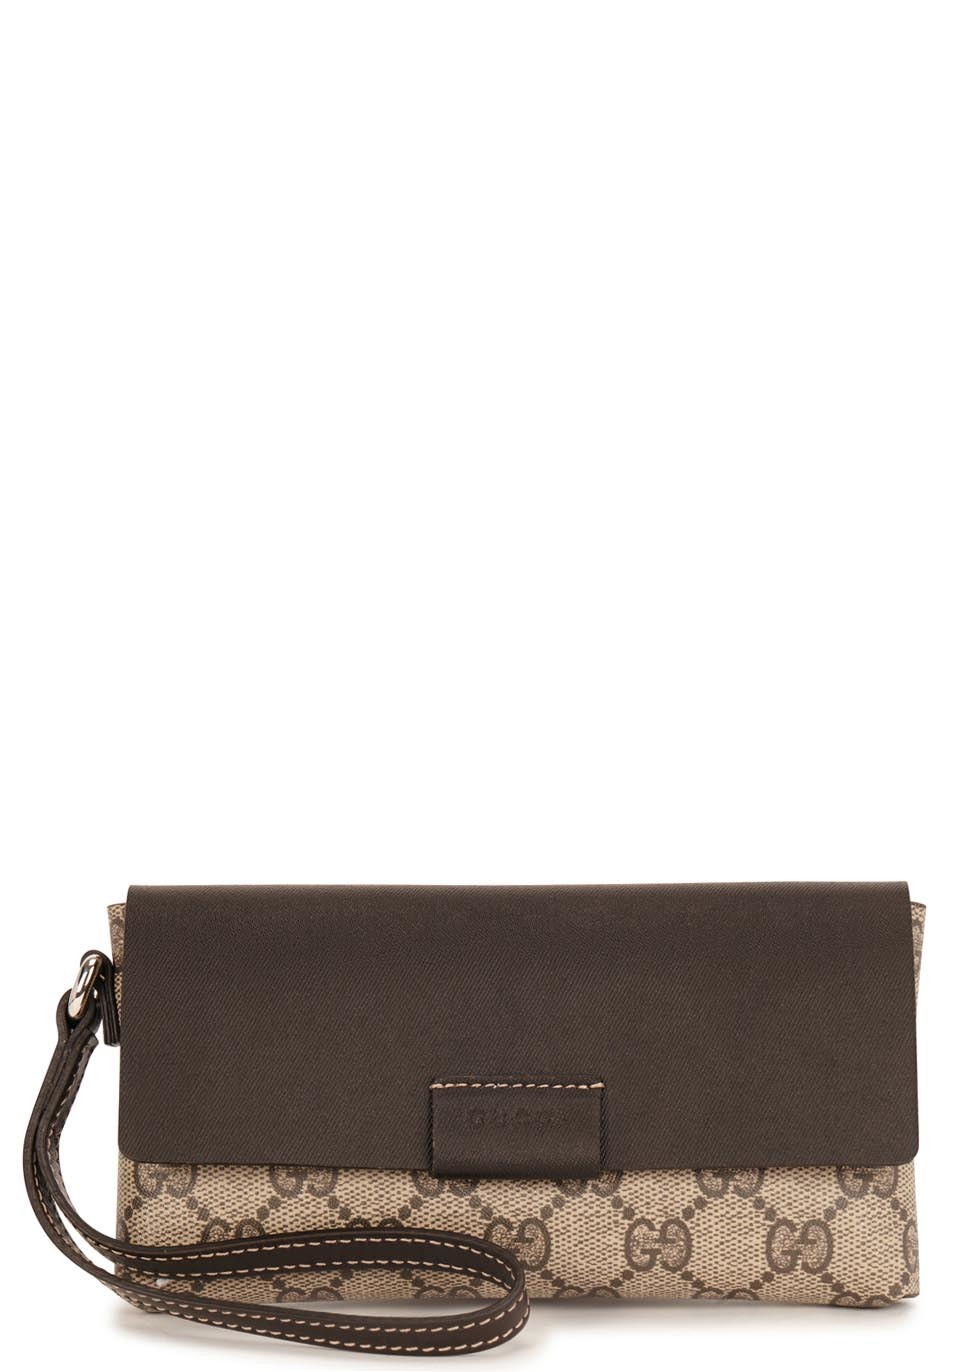 Gg Monogrammed Faux Leather Clutch Bag - predominant colour: chocolate brown; secondary colour: stone; occasions: evening; type of pattern: standard; style: clutch; length: handle; size: small; material: leather; finish: plain; pattern: patterned/print; season: a/w 2015